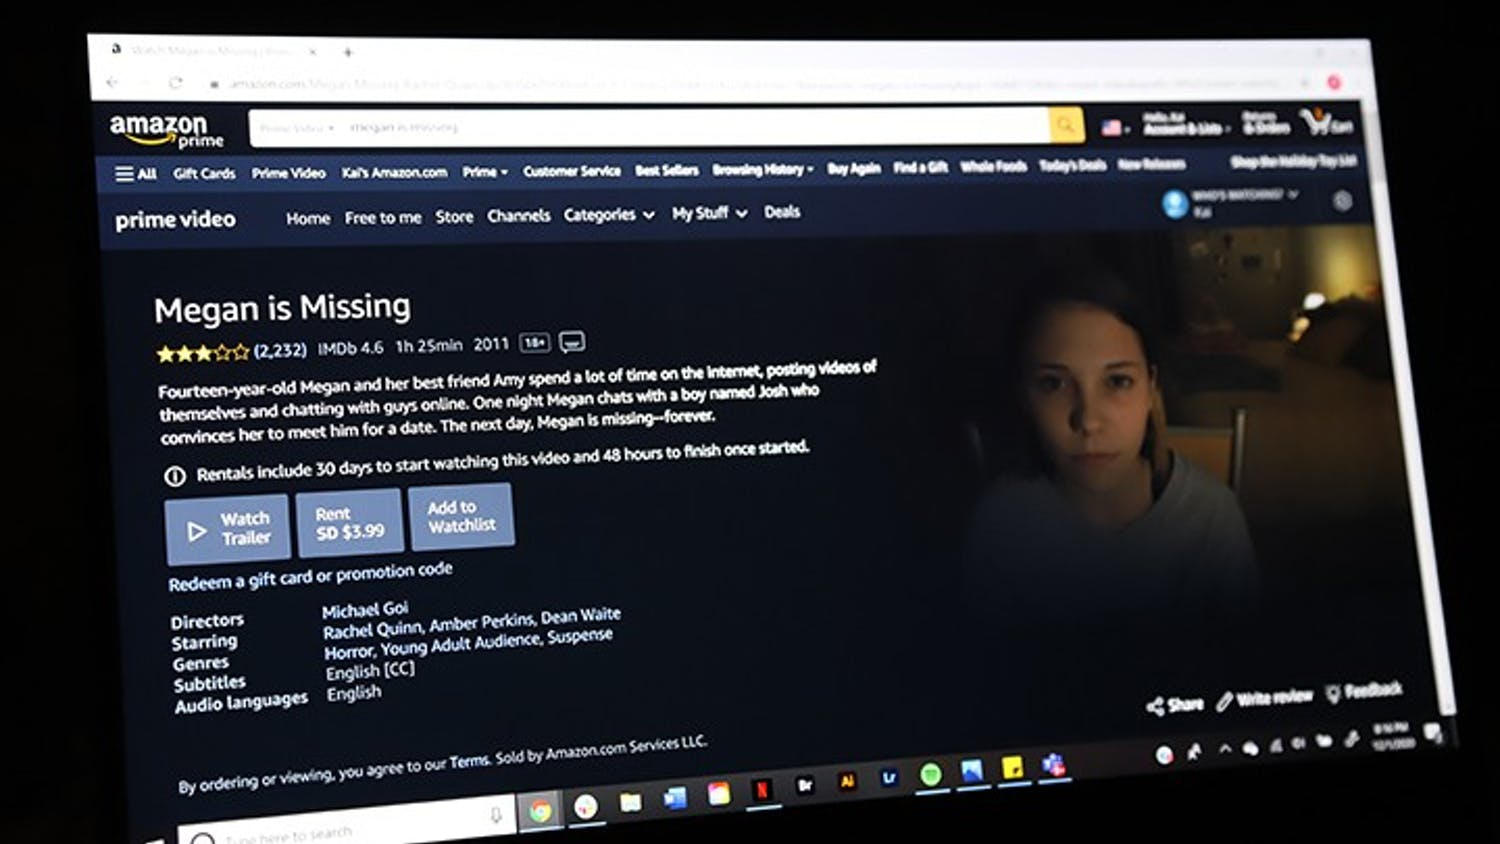 """Megan Is Missing"" is a horror/thriller about a 14-year-old girl who goes missing when she meets a boy for a date. The movie is available on Amazon Video and YouTube."